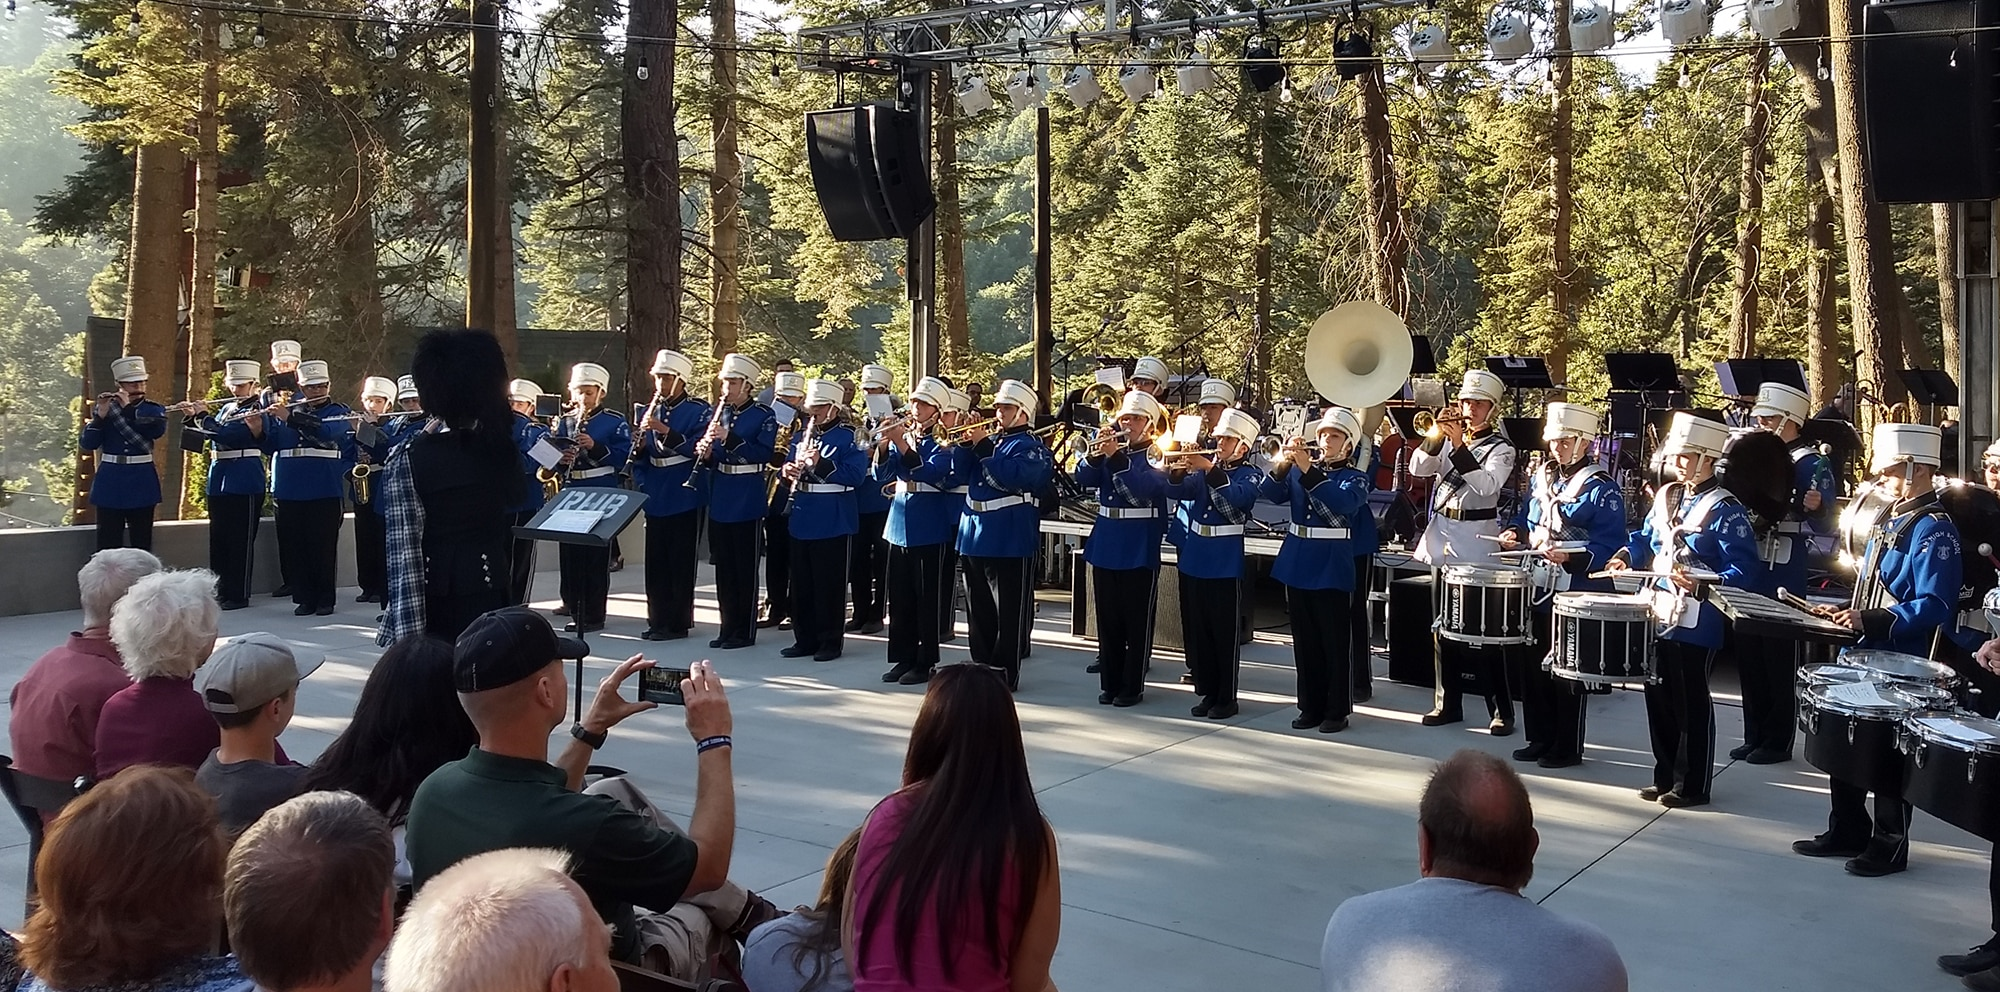 The 2017 Rim of the World High School Marching Band at the Blue Jay Jazz Festival at SkyPark Santa's Village